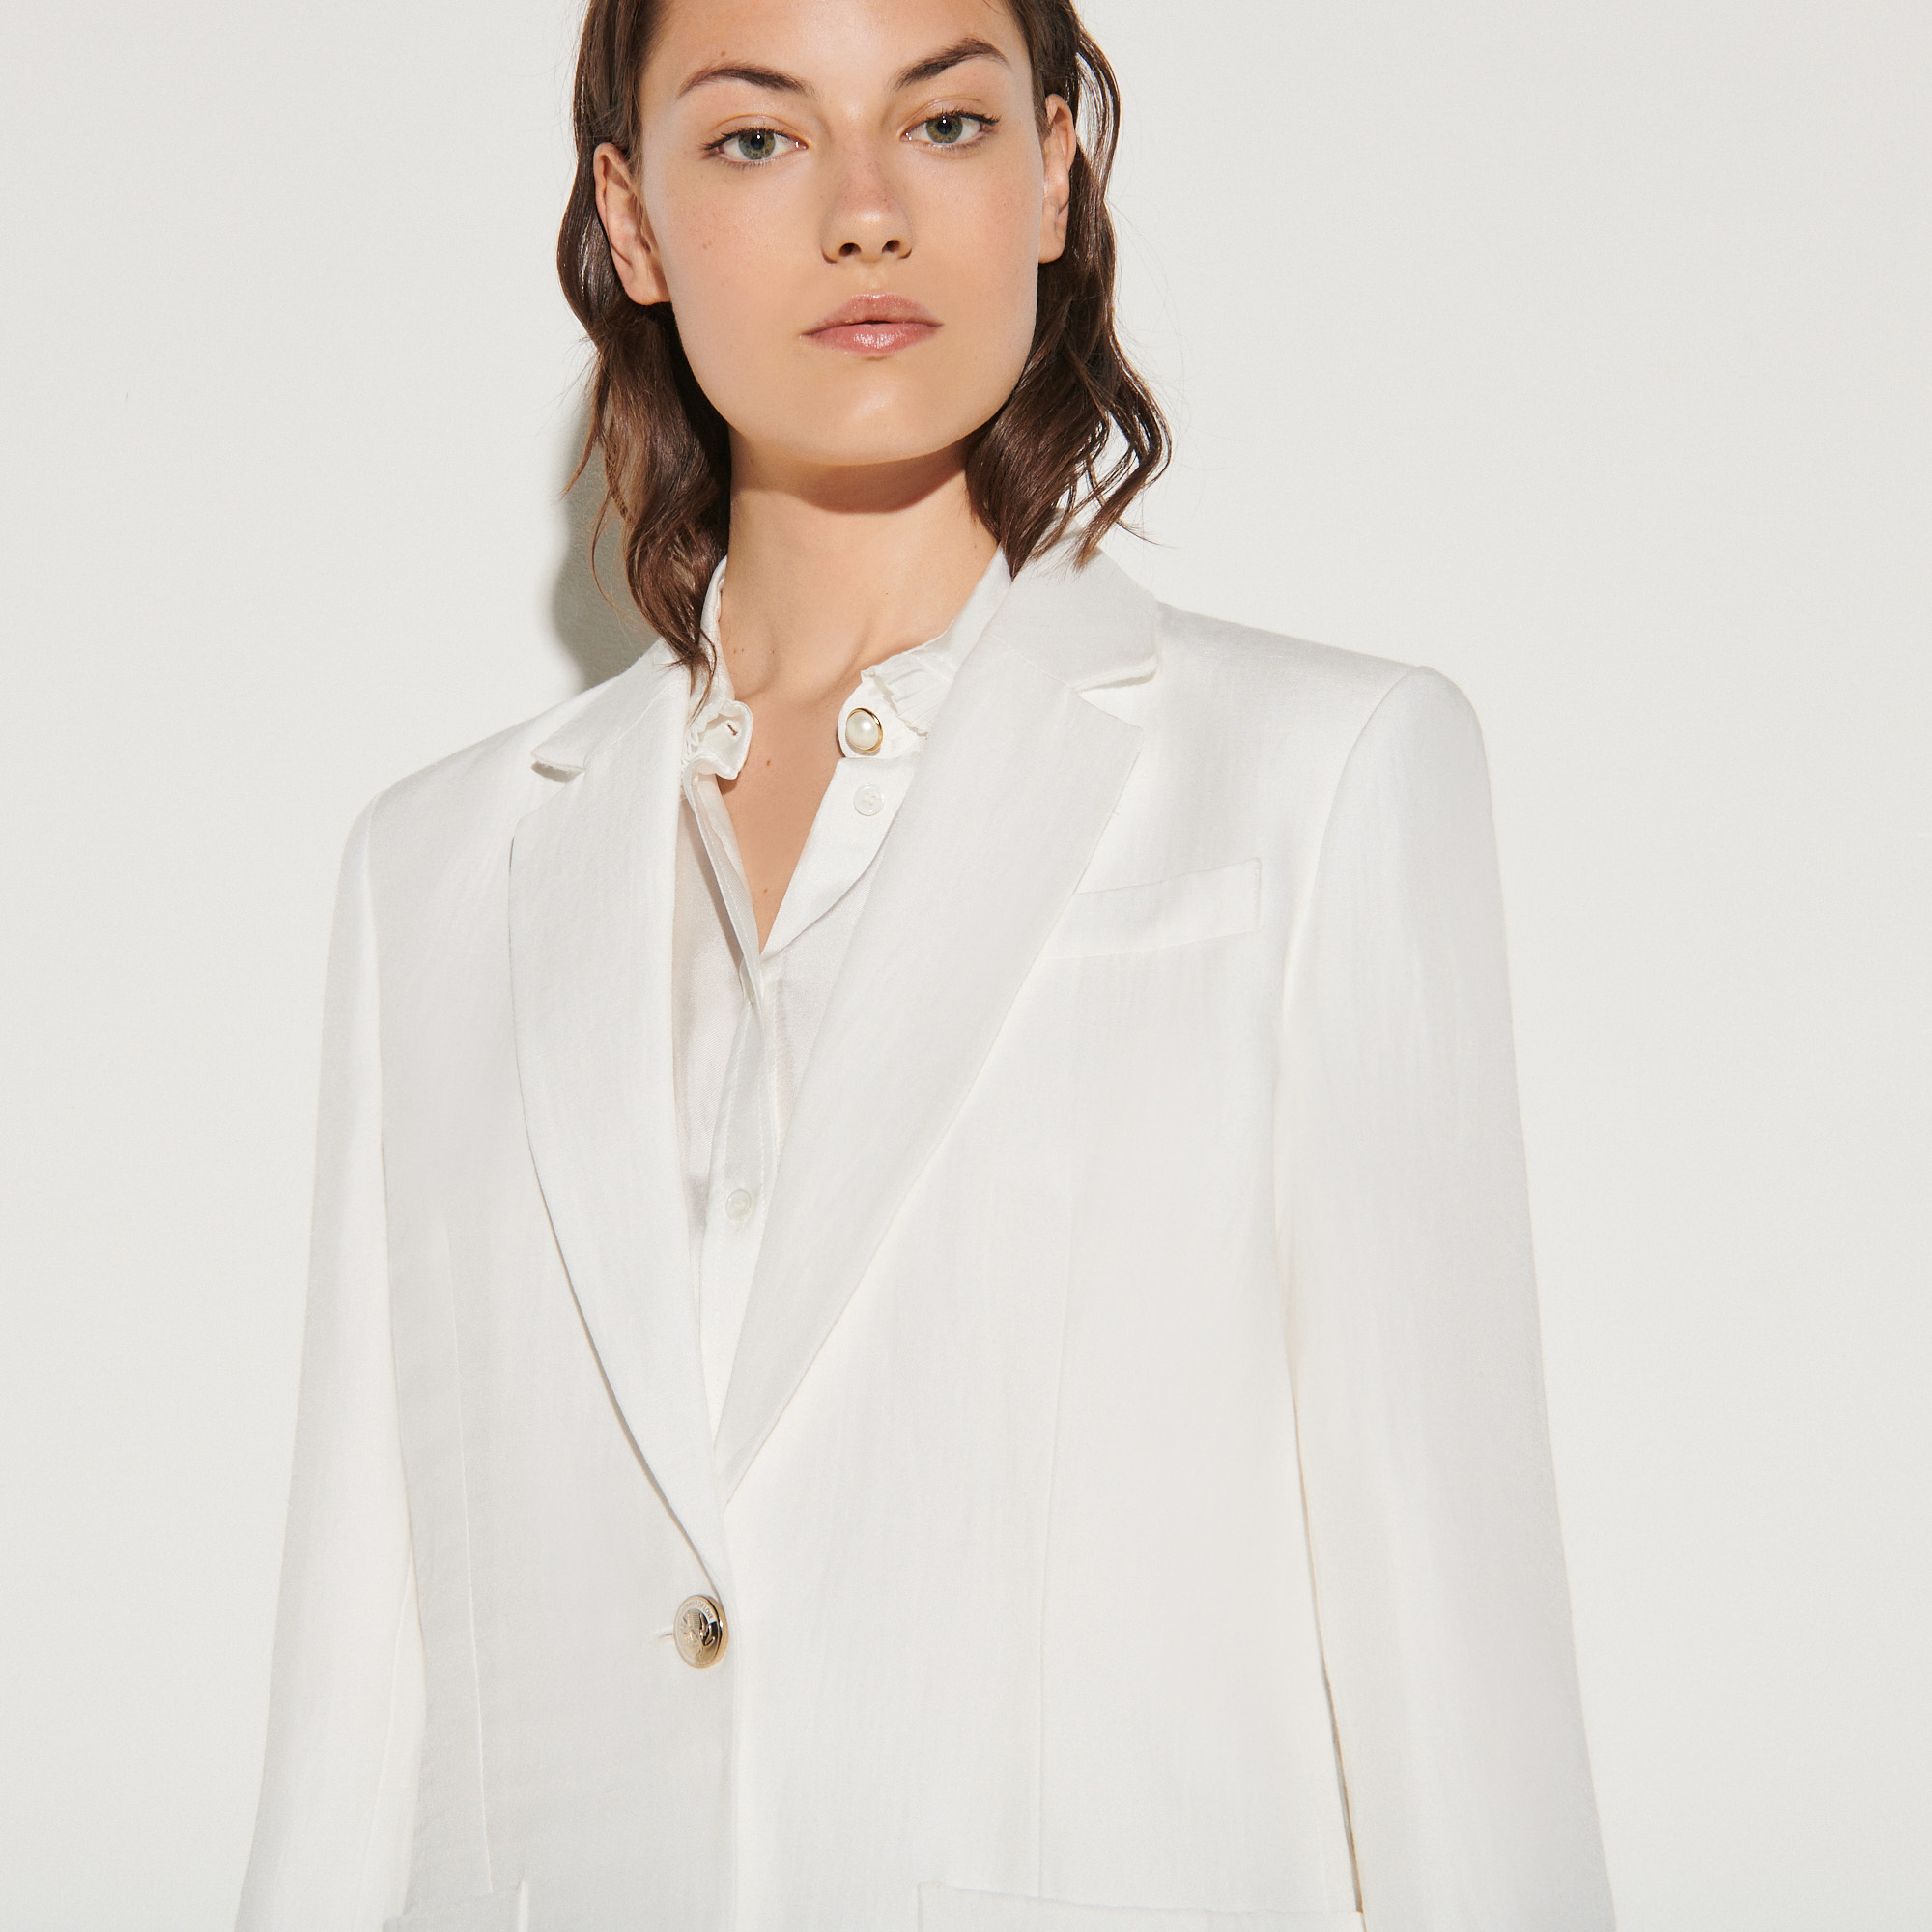 Linen blend tailored jacket in ecru - Ecru